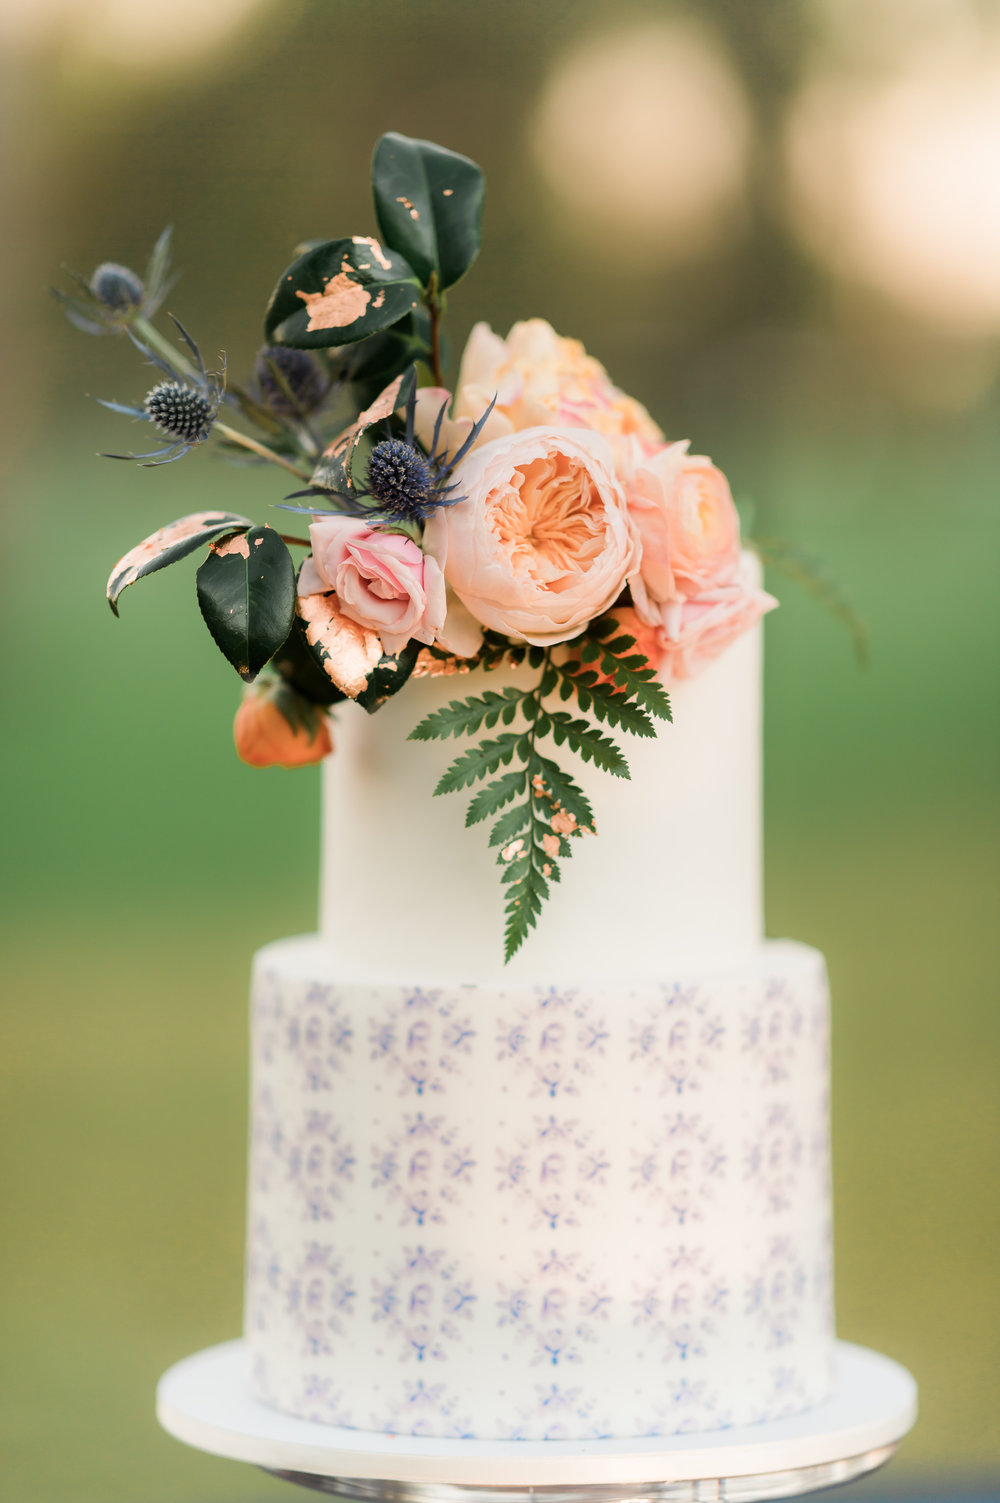 Private Estate Wedding in Phoenix - Ruze Cakehouse Cake with Custom Pattern and Form Floral Accents